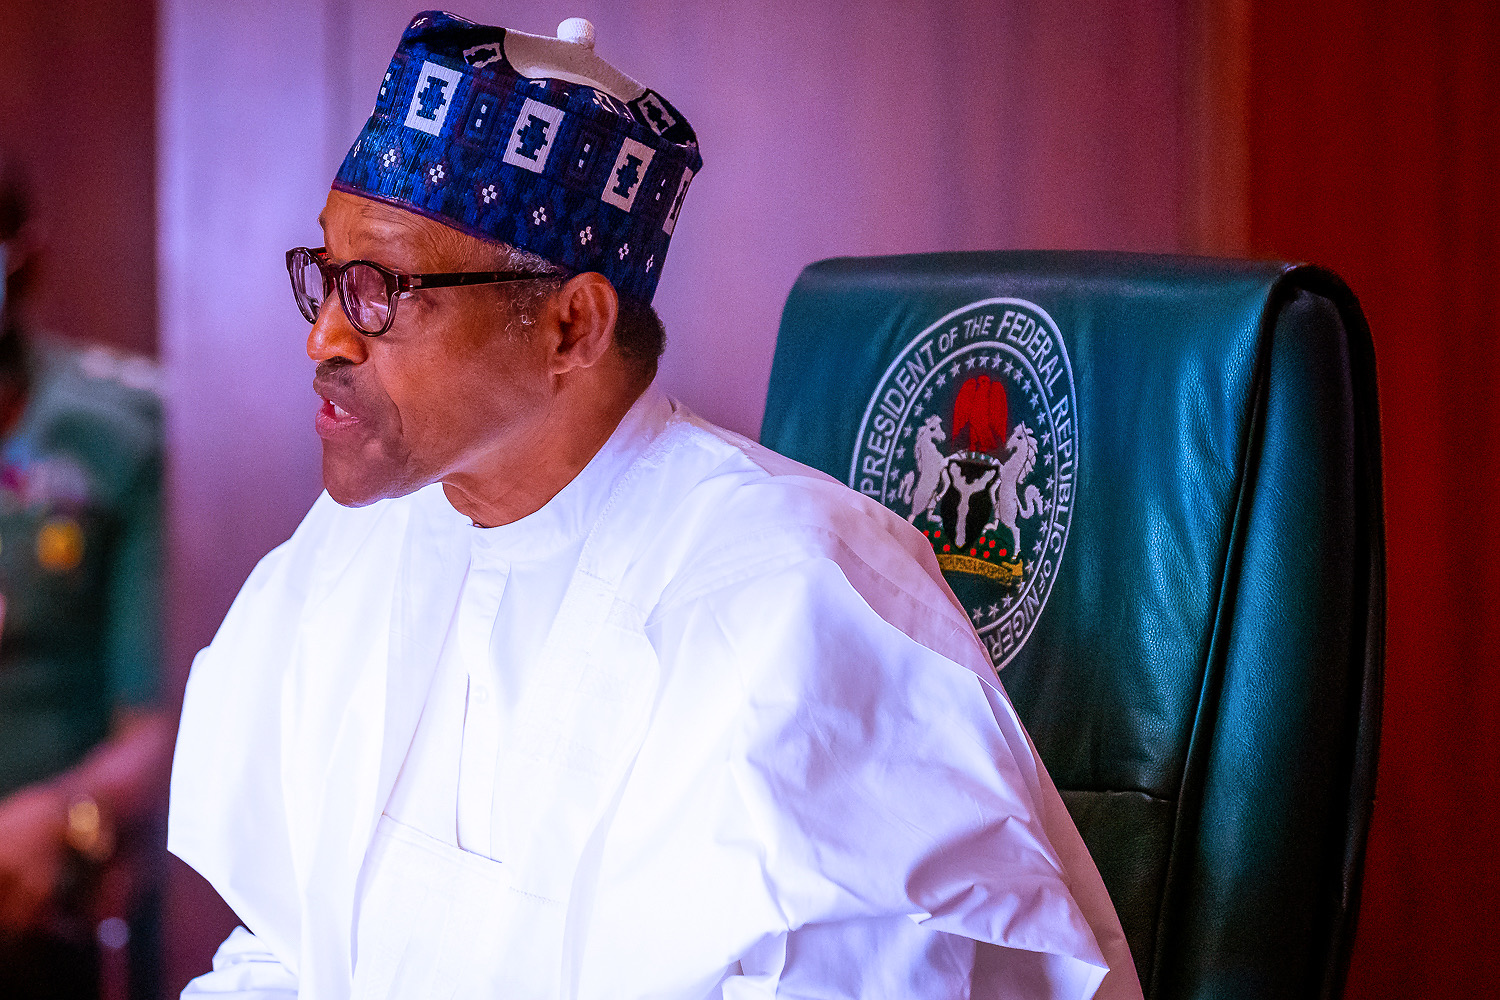 Bear with us, if we have not done enough – Buhari appeals to Nigerians